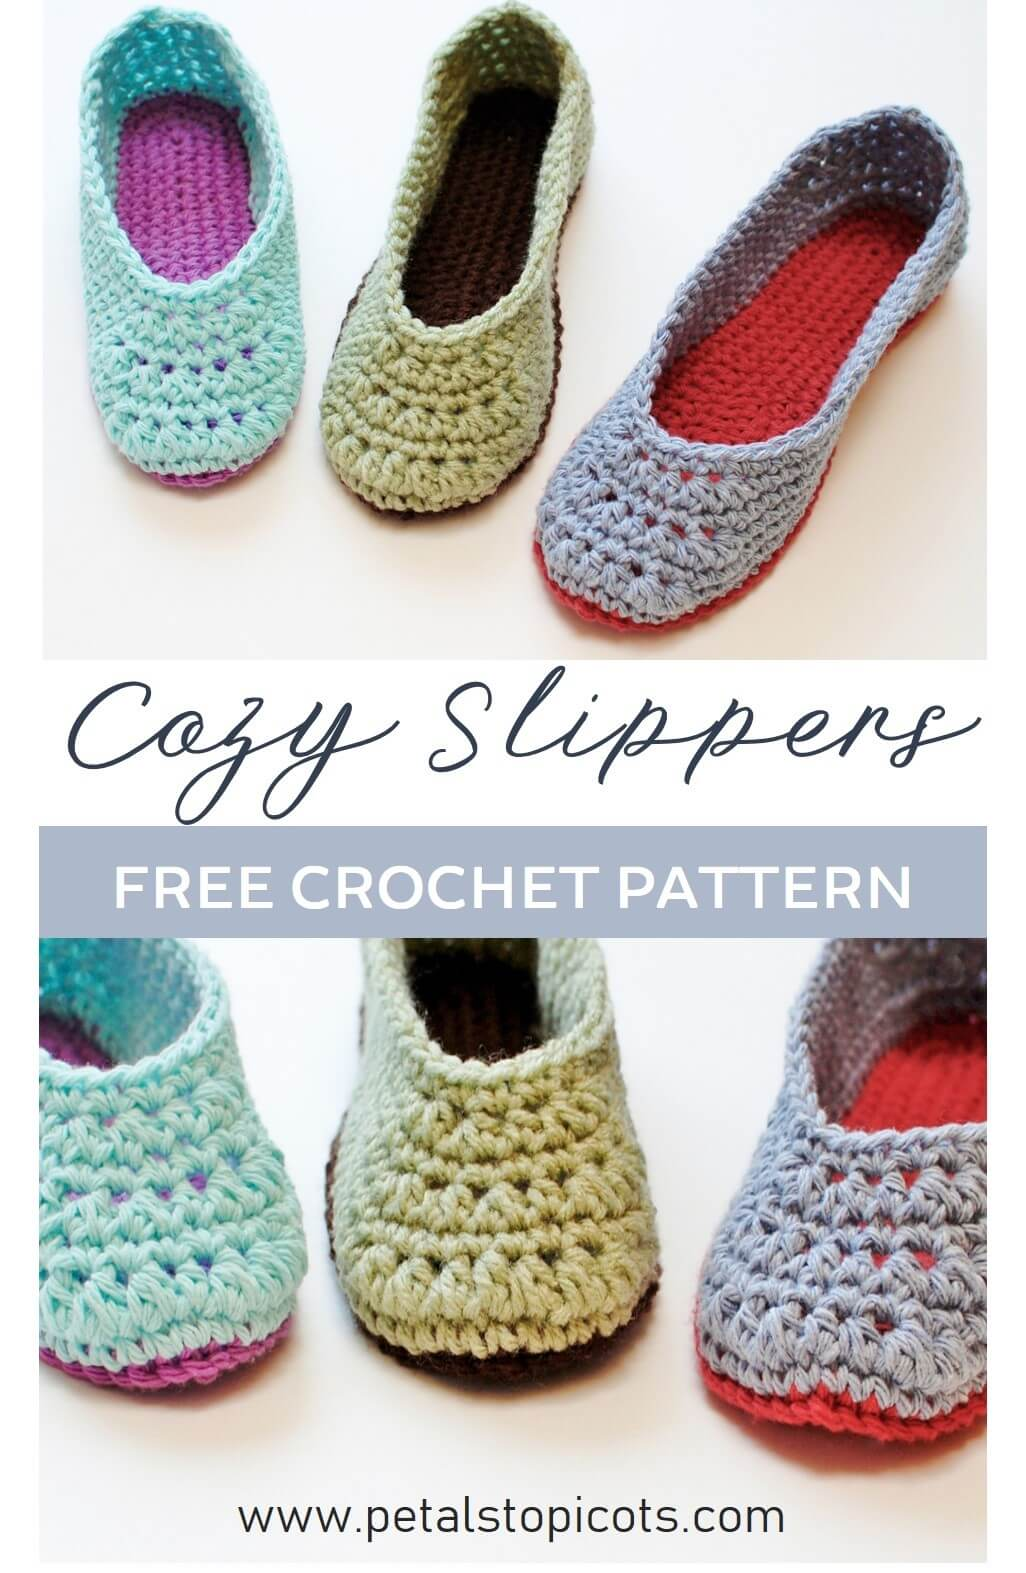 Crochet Slippers - A Free Crochet Slipper Pattern!